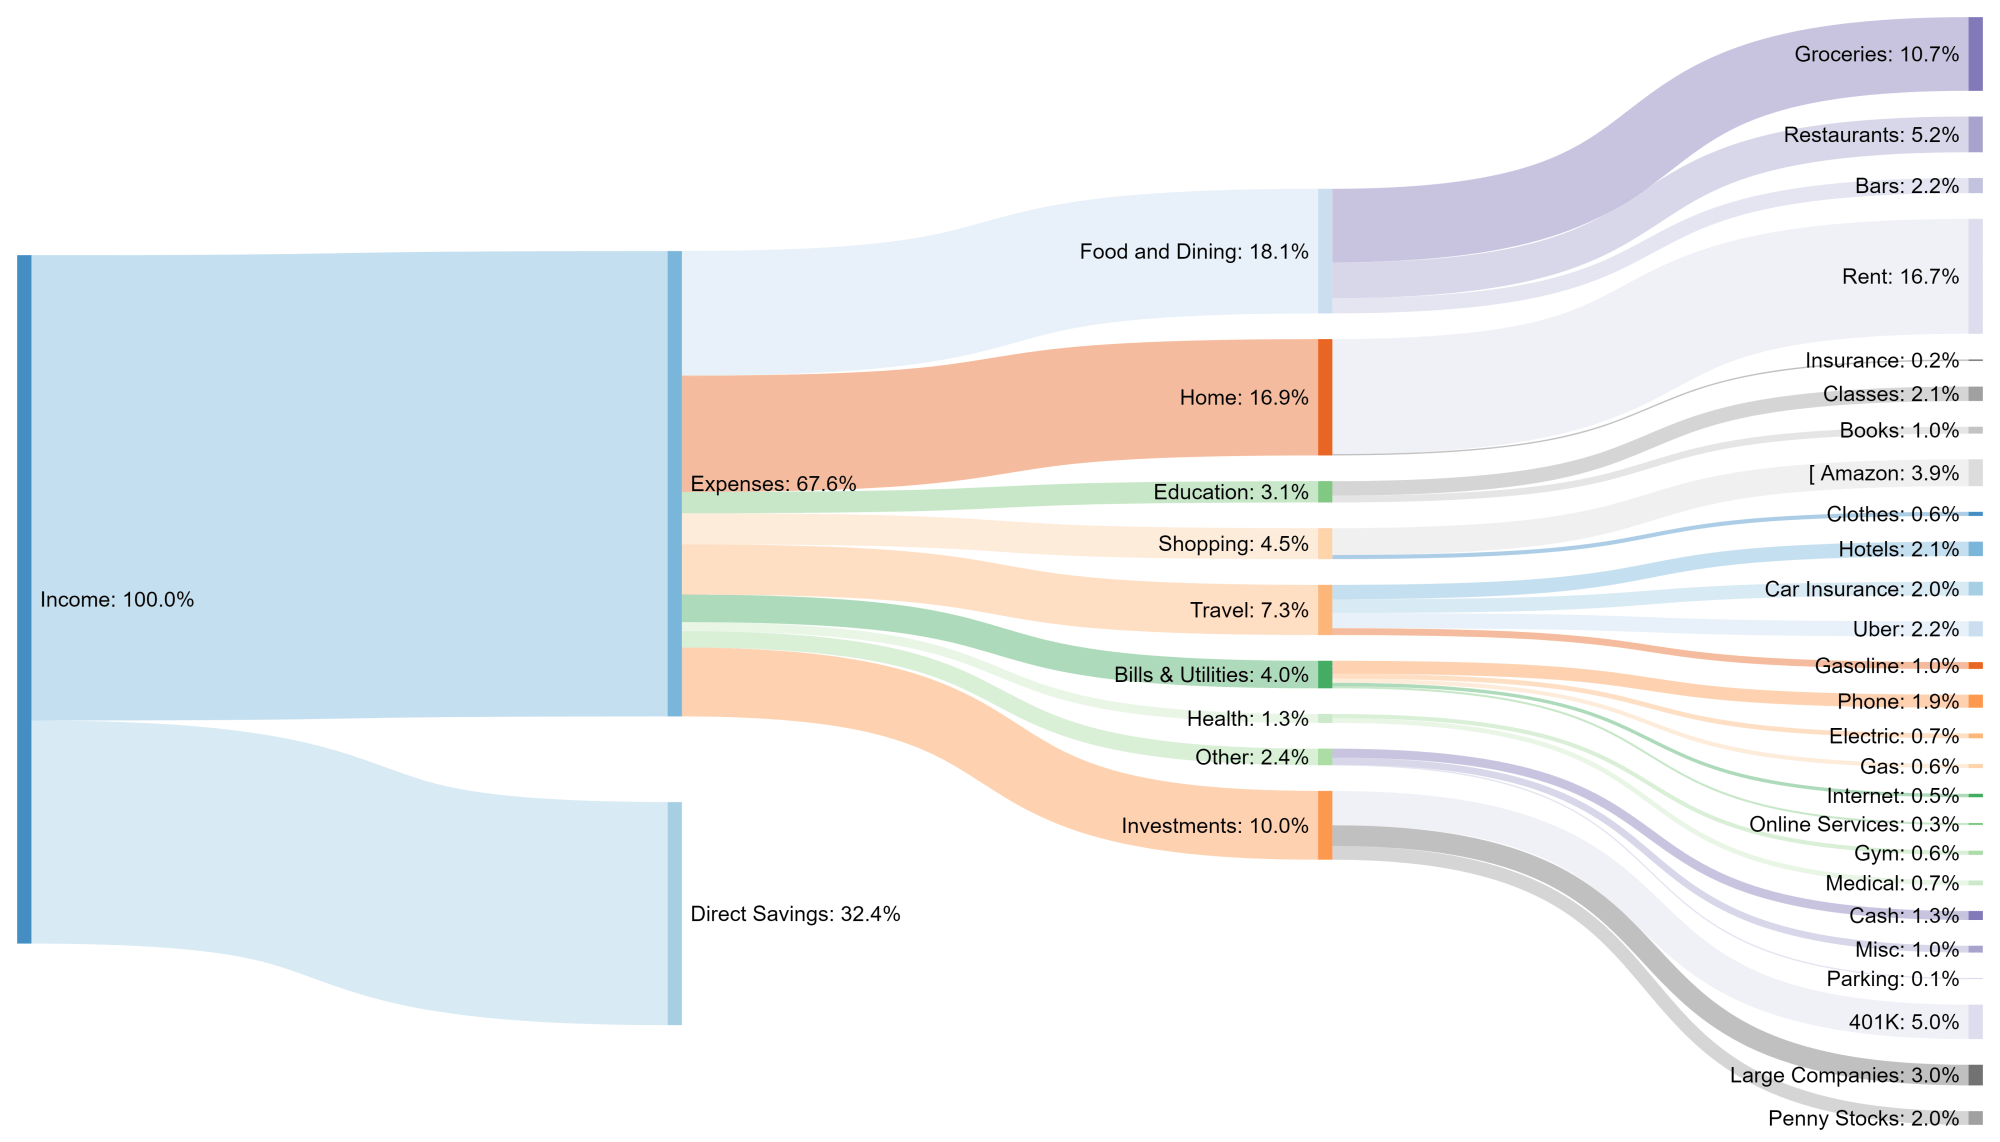 hight resolution of oc oc sankey diagram showing my monthly expenditure and savings as a percentage of total income